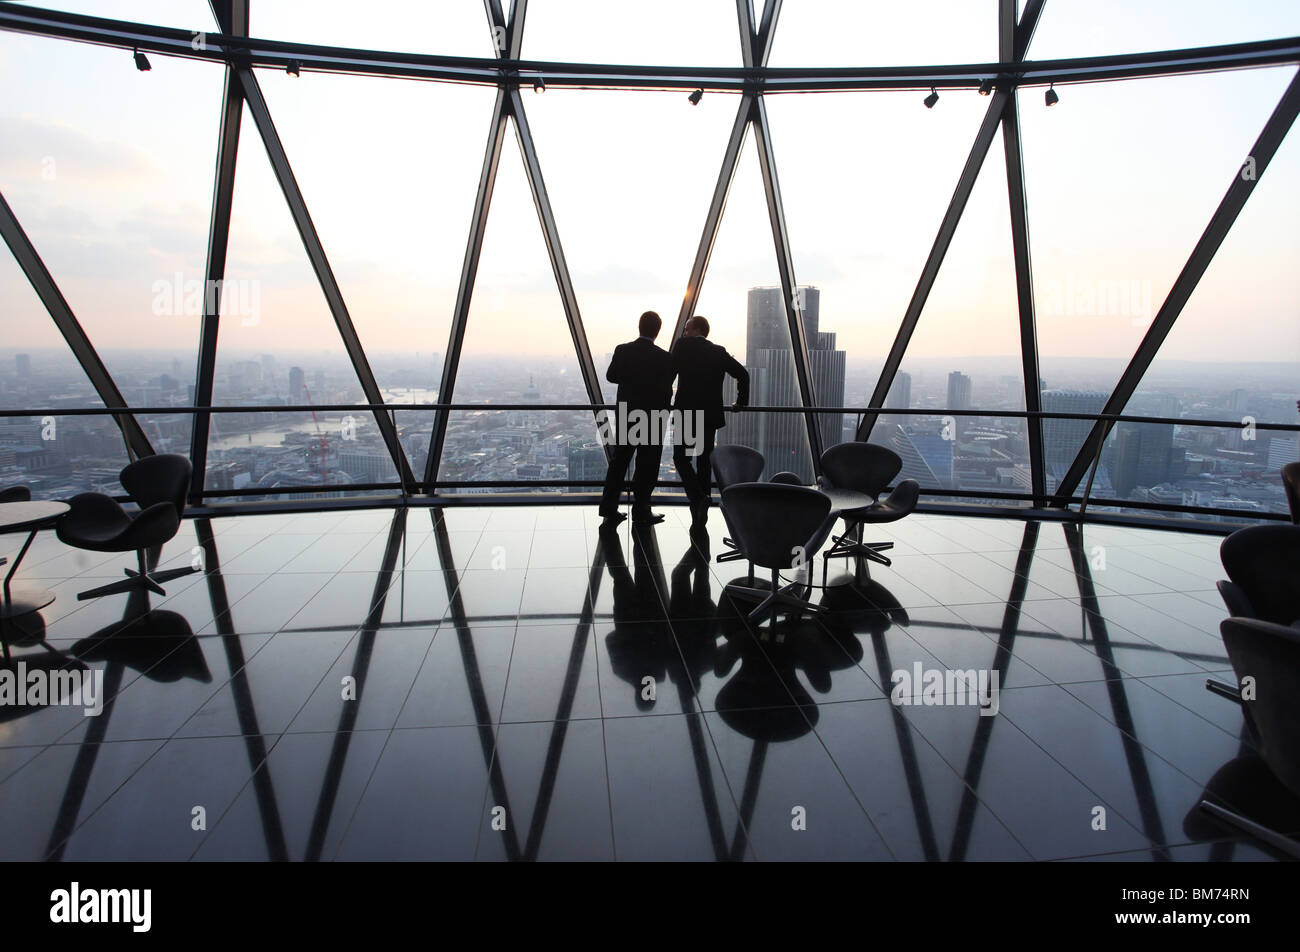 Businessmen stand and talk at the top of the Gherkin skyscraper in the city of London, U.K. - Stock Image